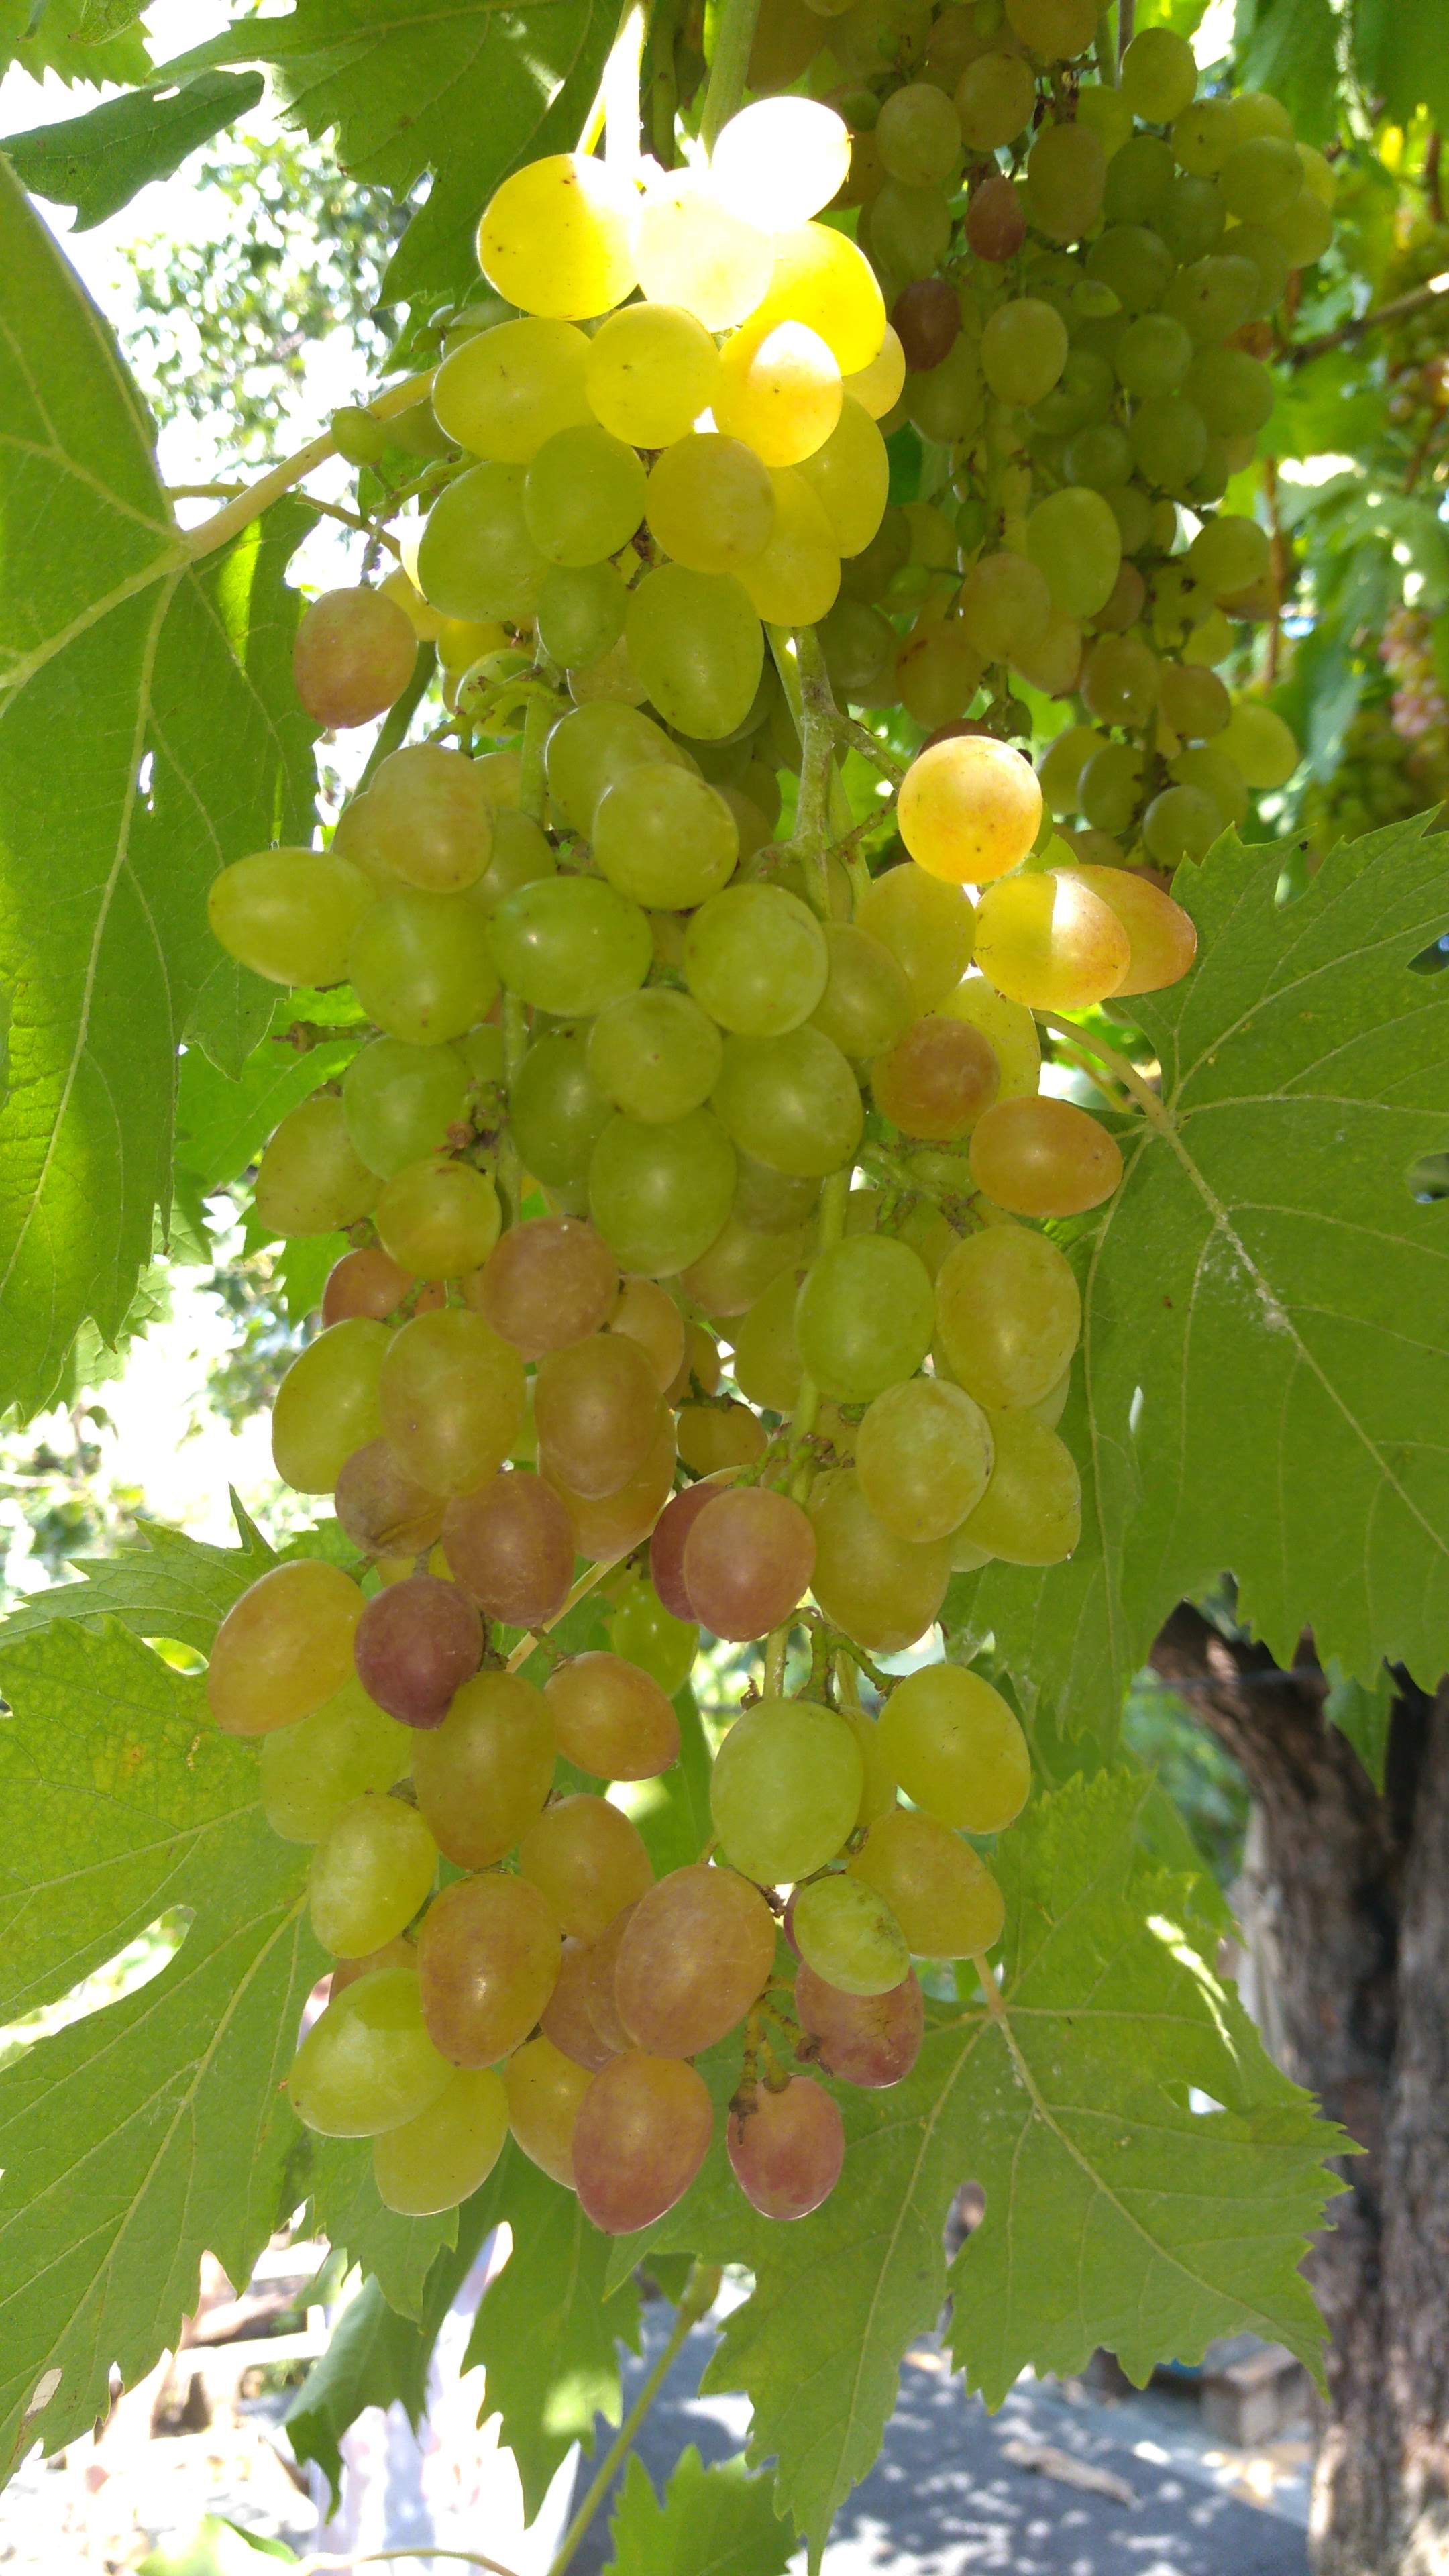 Grapes growing in the Odessa region